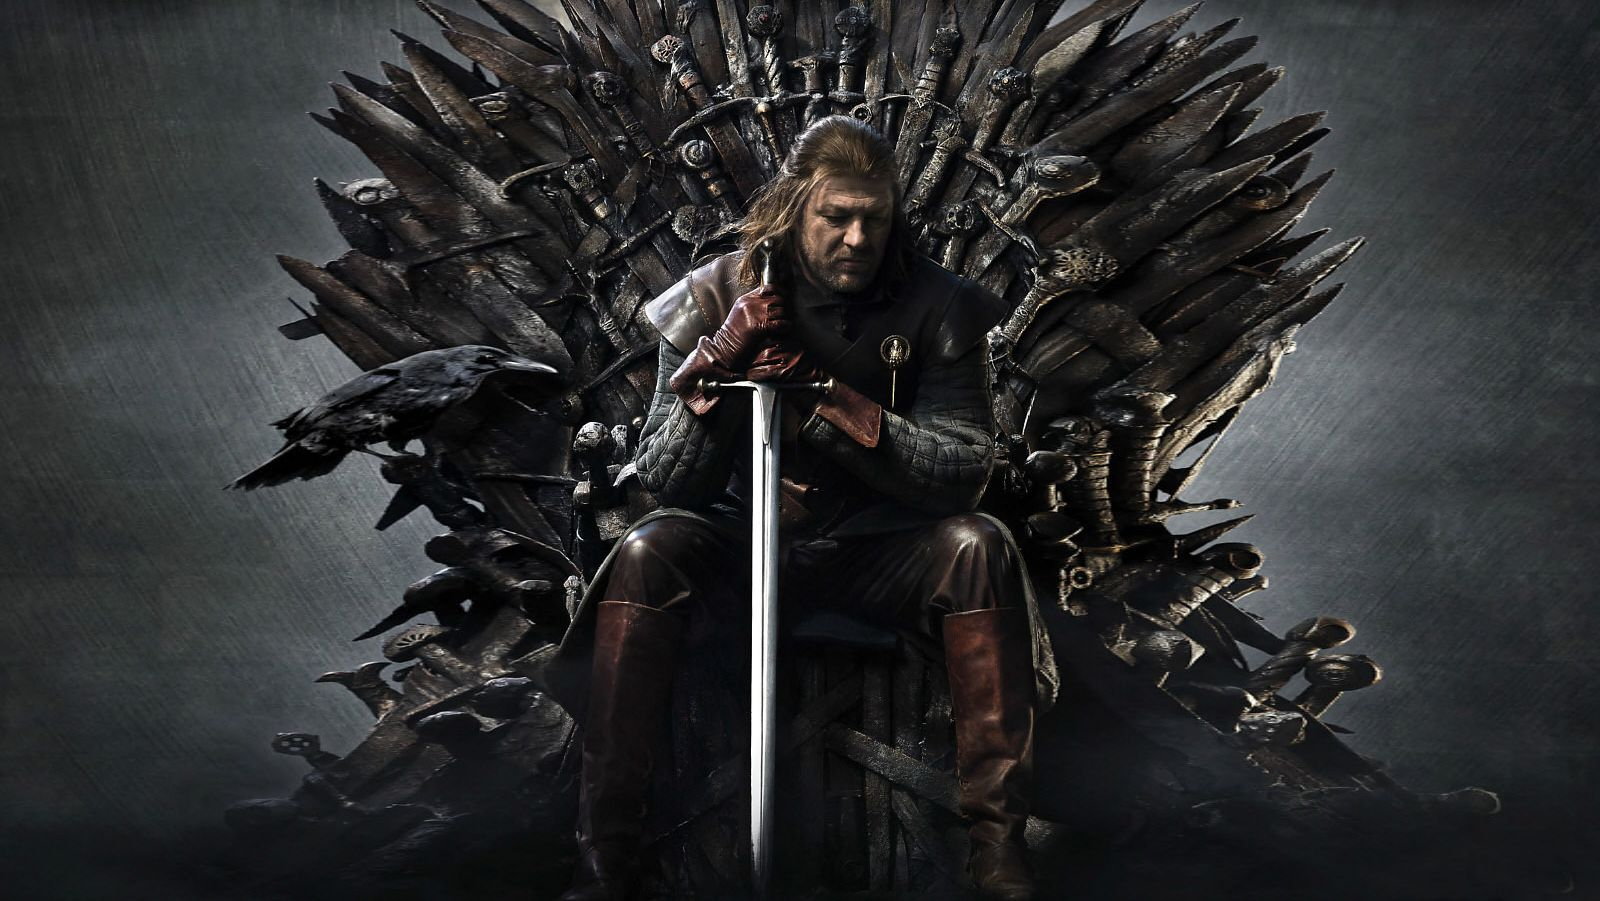 Game Of Thrones - the best game version is for free